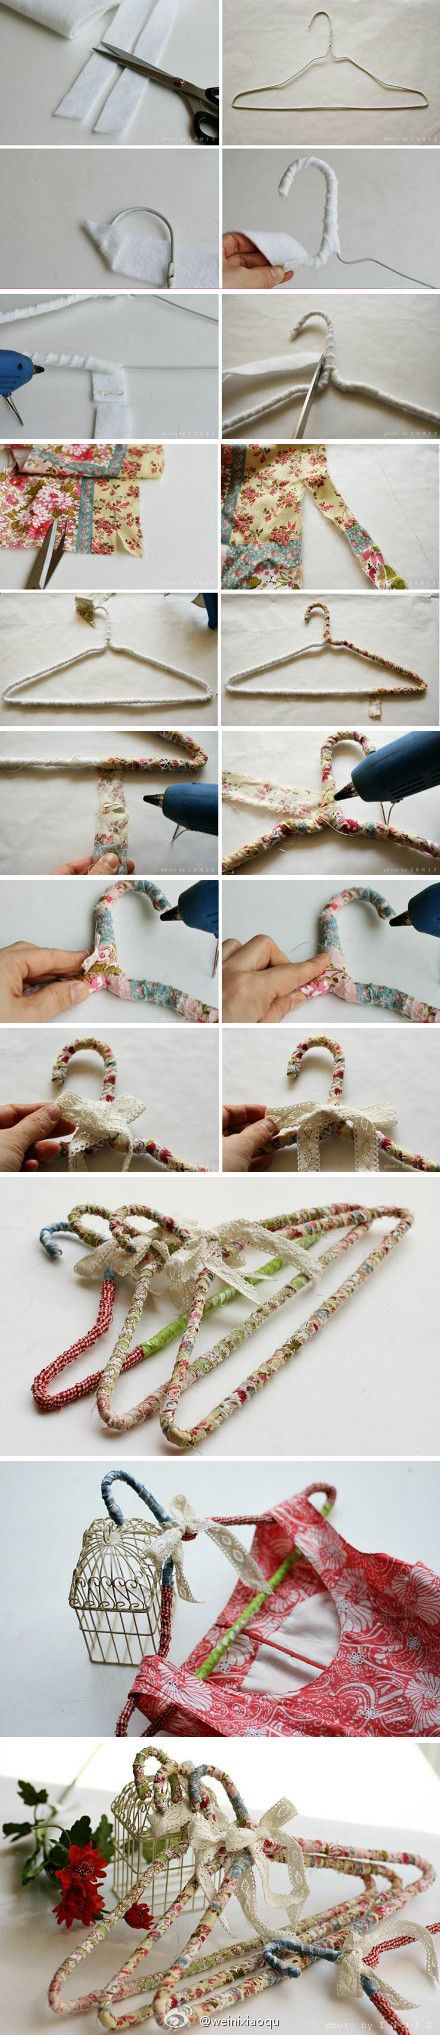 using Fabric Scraps to cover Cloth Hangers - My mom needs to do this to all of her thousands of awful wire hamgers!!! :o)